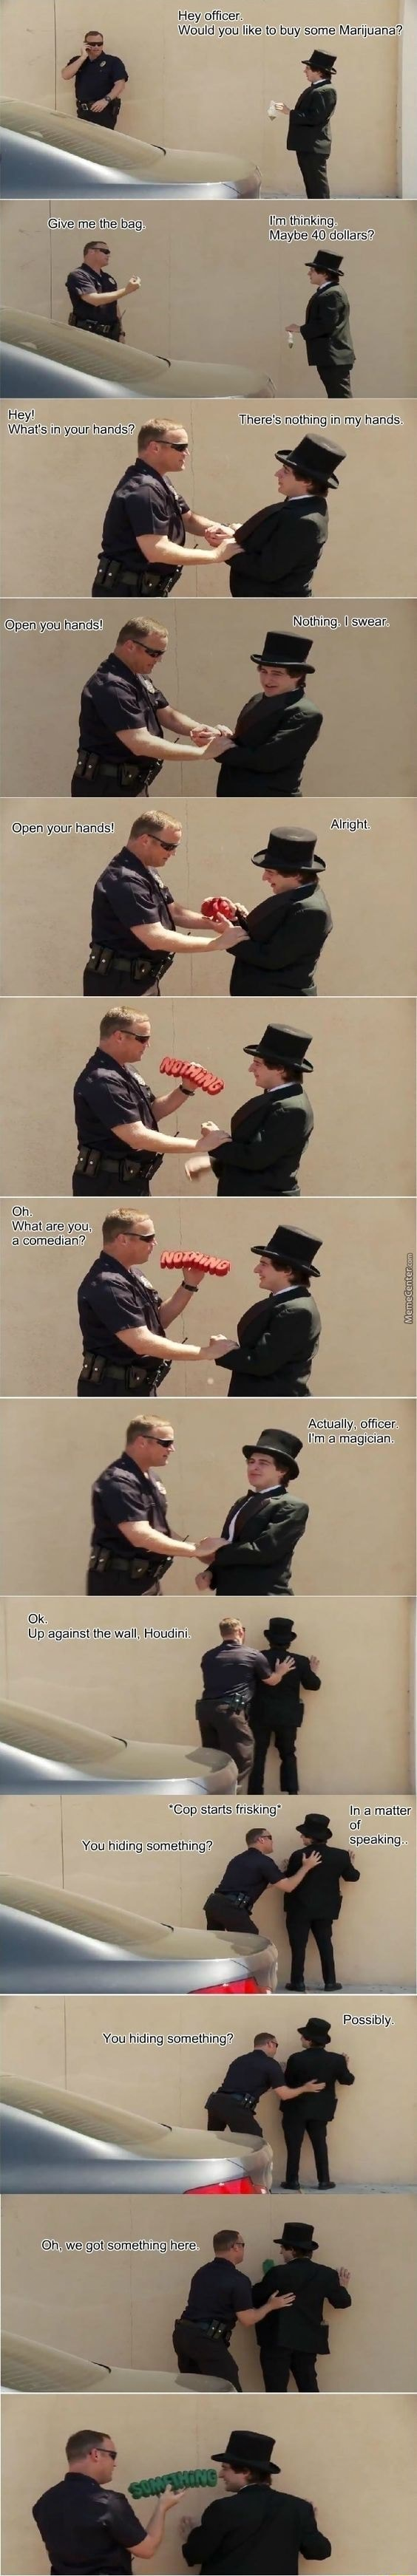 Hey officer Would you like to buy some Marijuana Givelme the lim thinking Maybe Hey There's nothing in my hands What's in your hands Nothing Ilswear Openjyouhands pen your hands Alright Oh. Whatlare you, comedian Actually, officer imalmagician Ok Up against the wall, Houdini *Cop starts frisking Ina matter of You hiding something speaking Possibly You hiding something Oh, we got somethingjhere memes